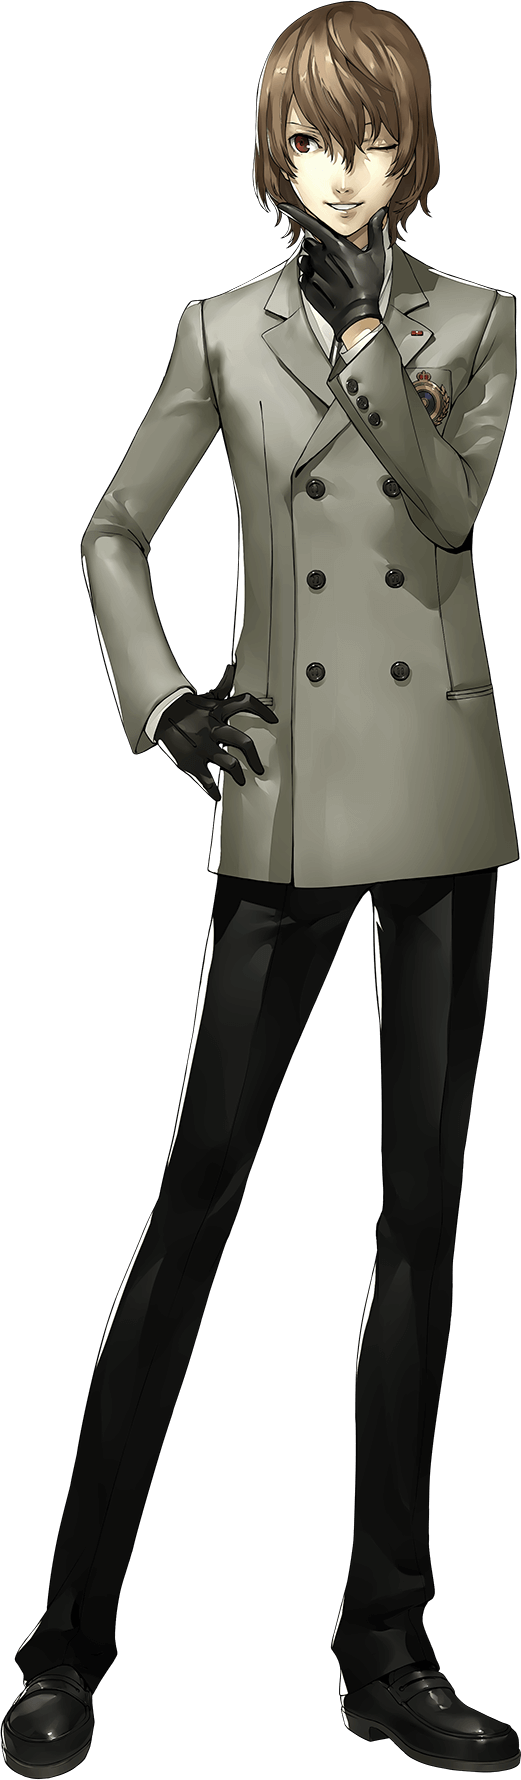 P5_Goro_Akechi-Personagem_Persona-5